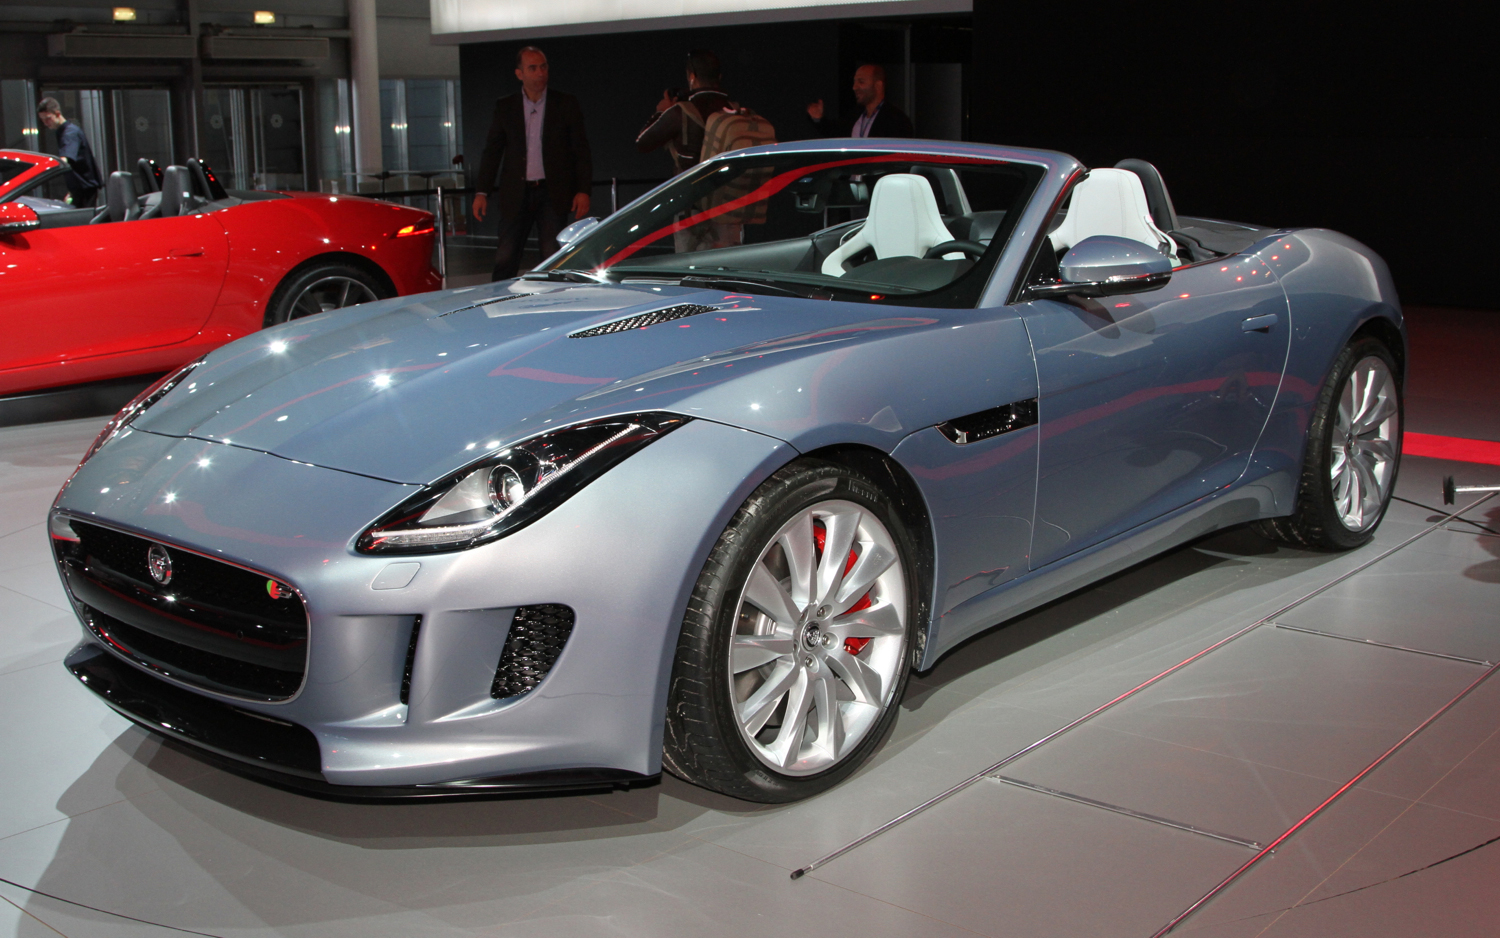 latest cars models 2014 jaguar f type. Black Bedroom Furniture Sets. Home Design Ideas